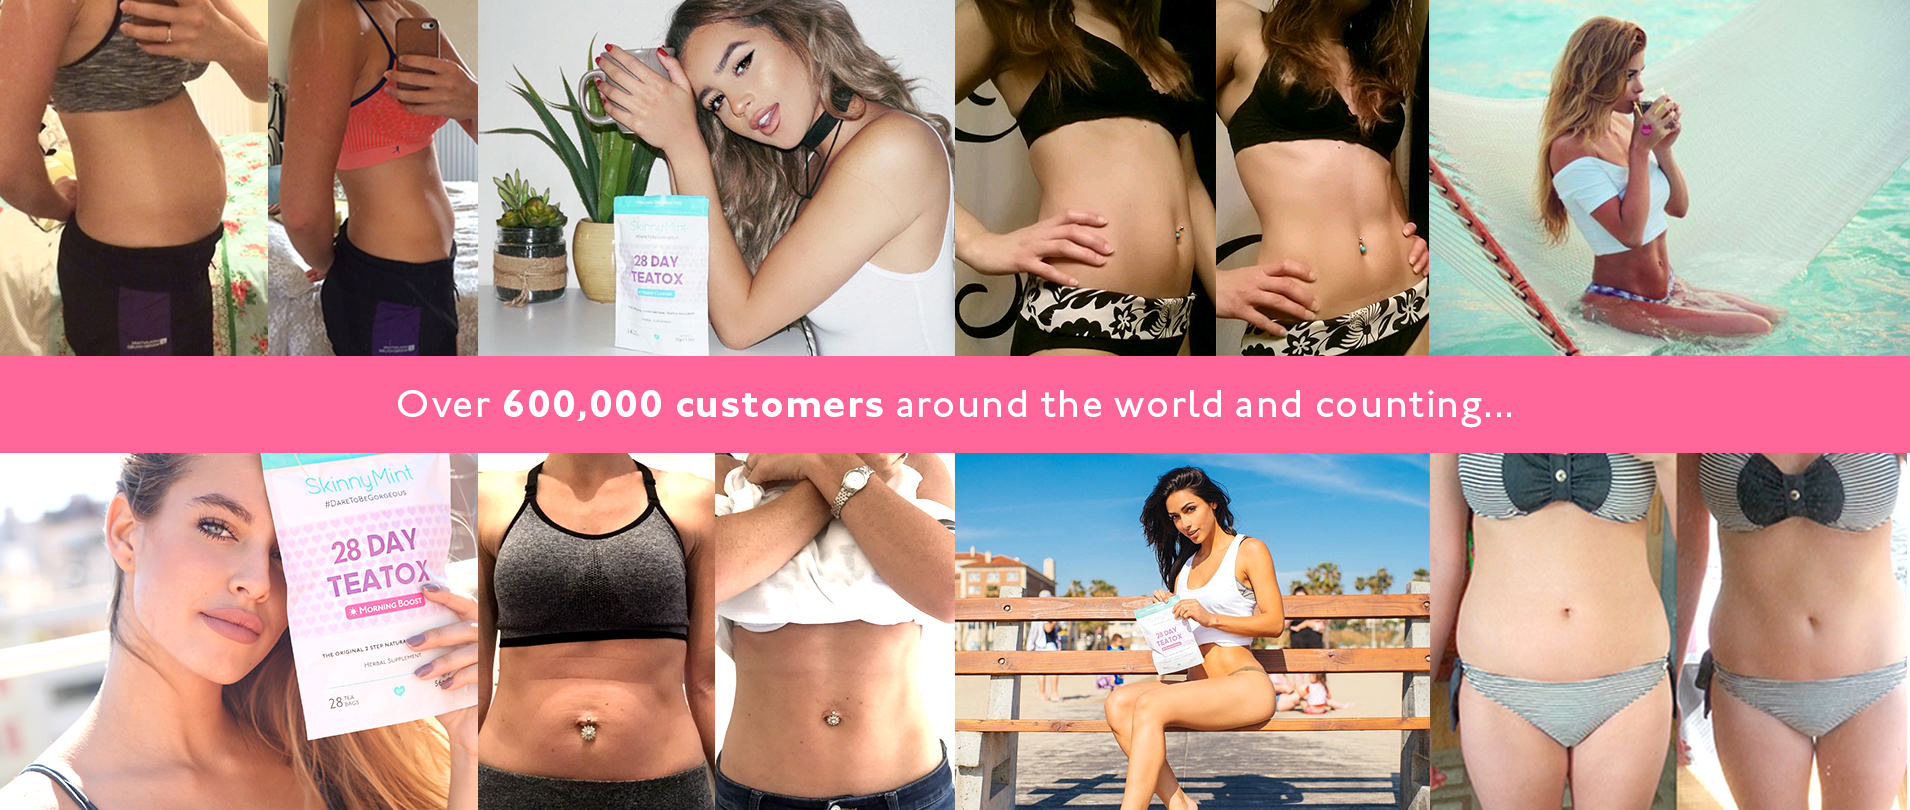 Is SkinnyMint working? SkinnyMint teatox reviews by real customers